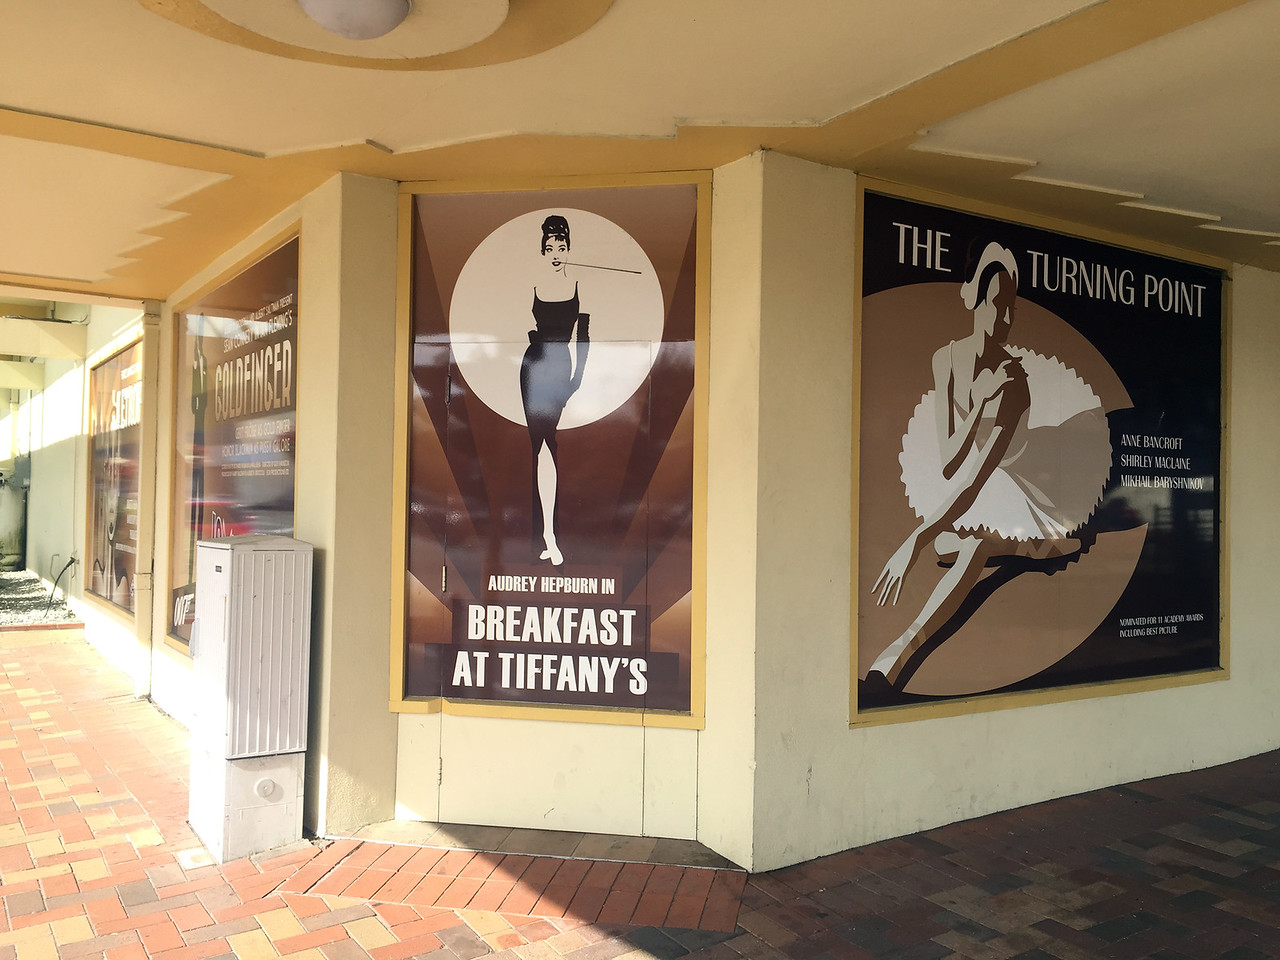 The front facade of the theatre in Nelson Central, New Zealand